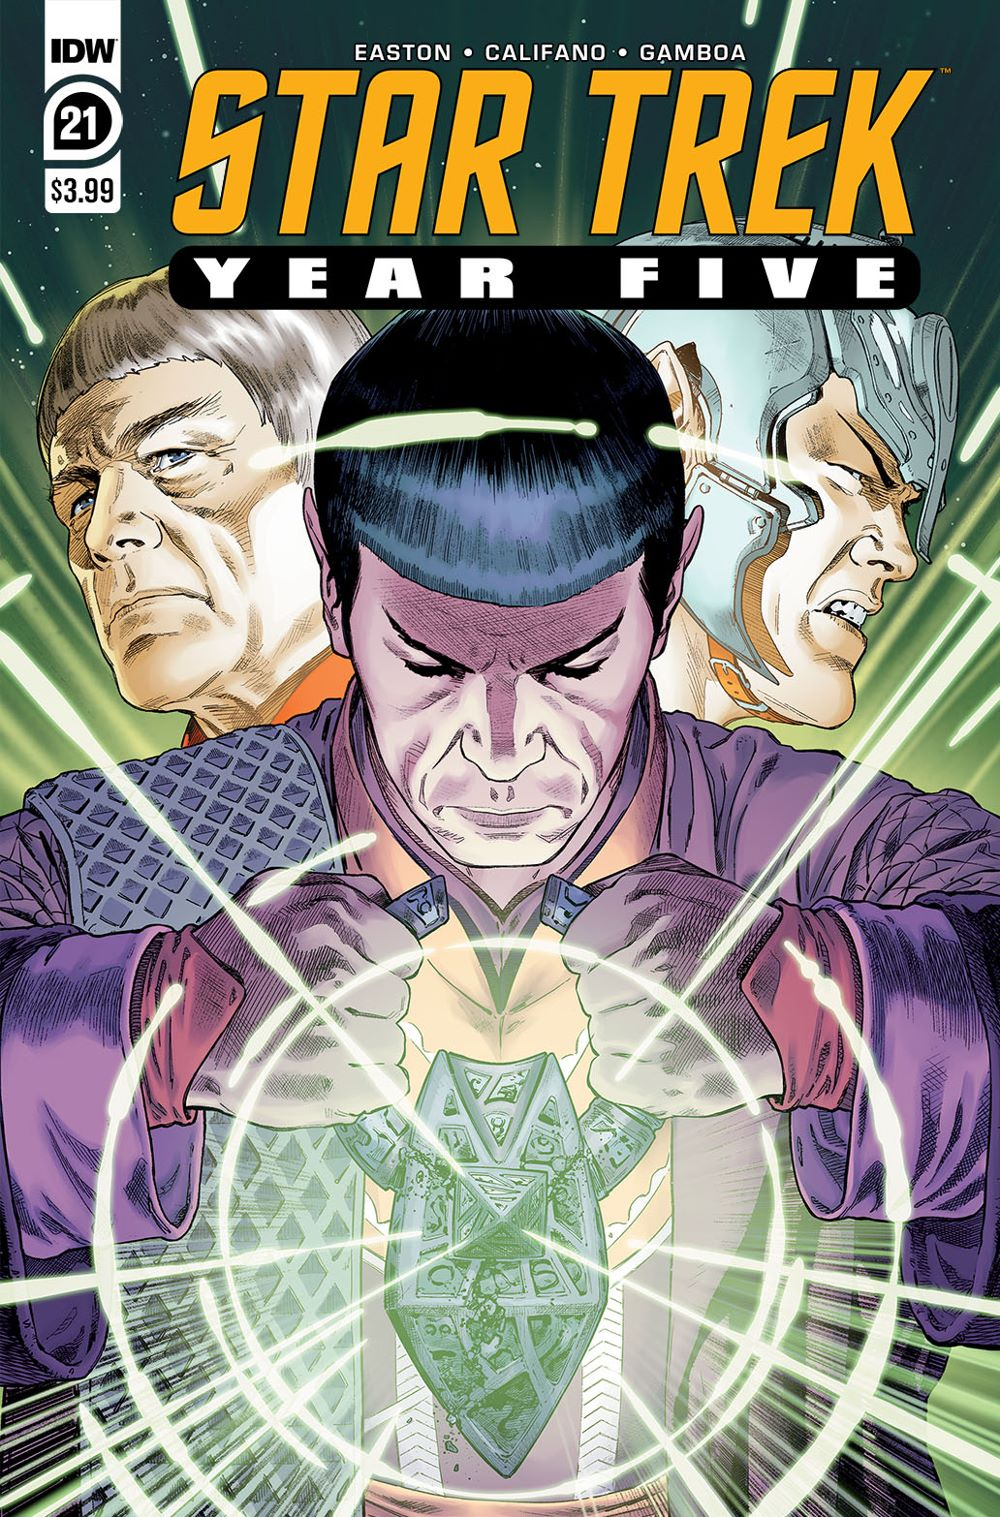 ST_YearFive21-cover-copy IDW Publishing April 2021 Solicitations